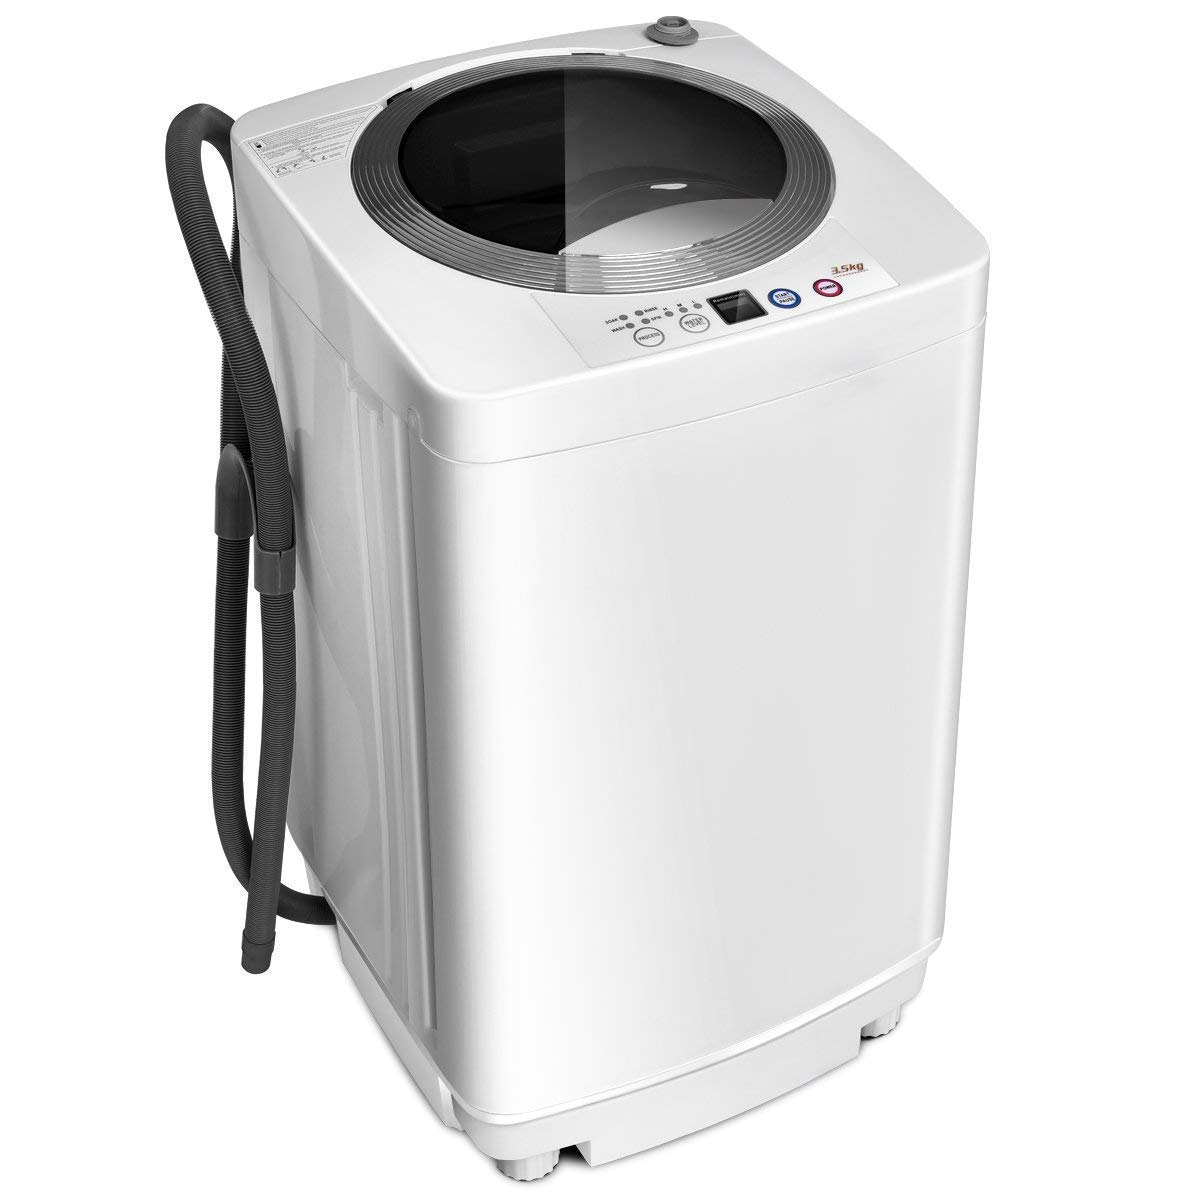 Buy 2016 BaseCamp Portable Washing Machine With Spinner by ...